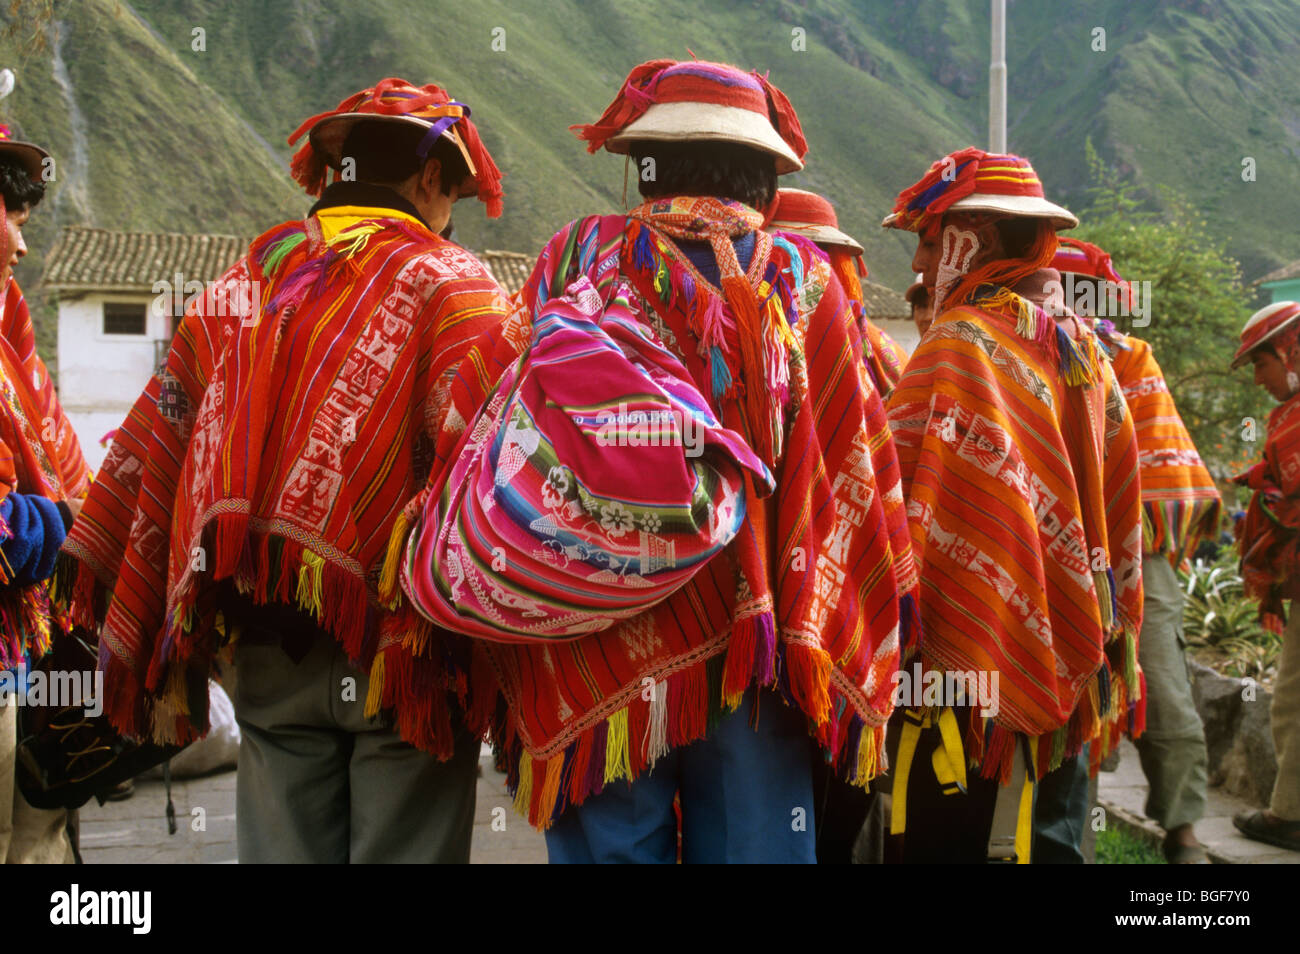 Peruvian porters on the Inca trail wearing woollen ponchos scarves or shawls, wait to guide tourists along the route. - Stock Image